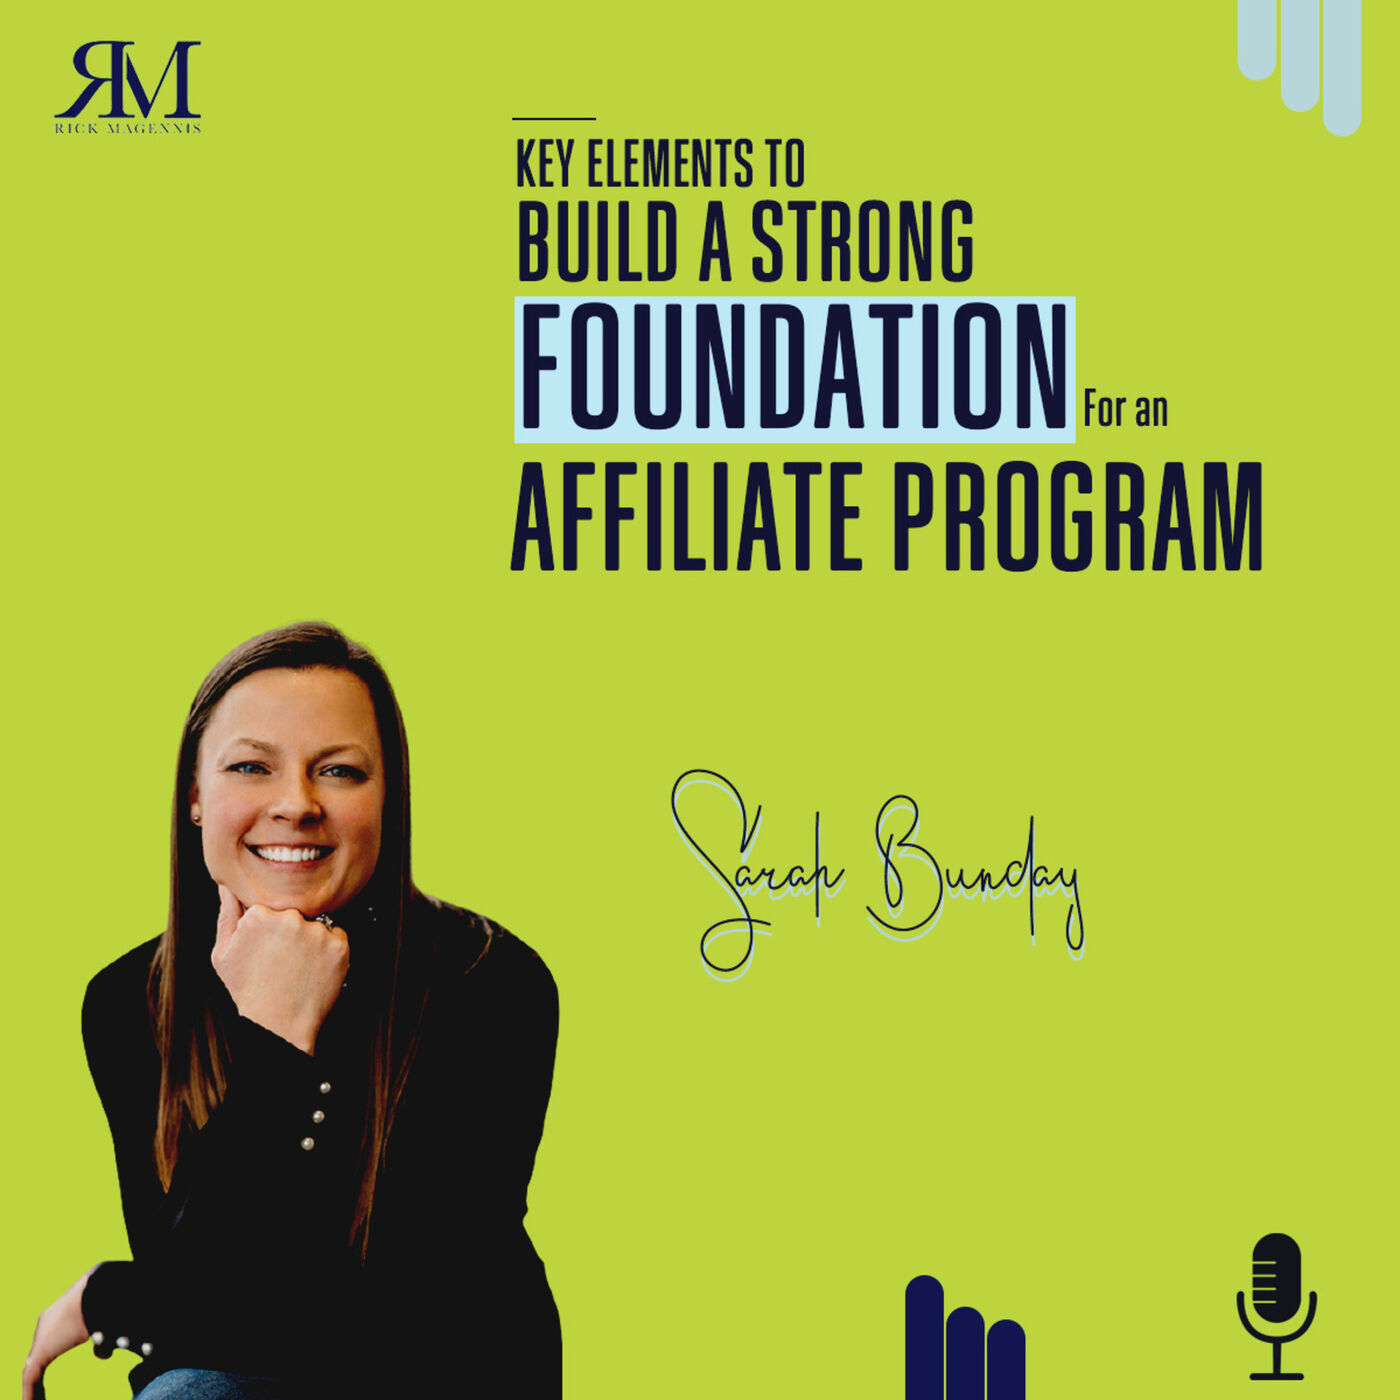 Key Elements to Build a Strong Foundation for an Affiliate Program